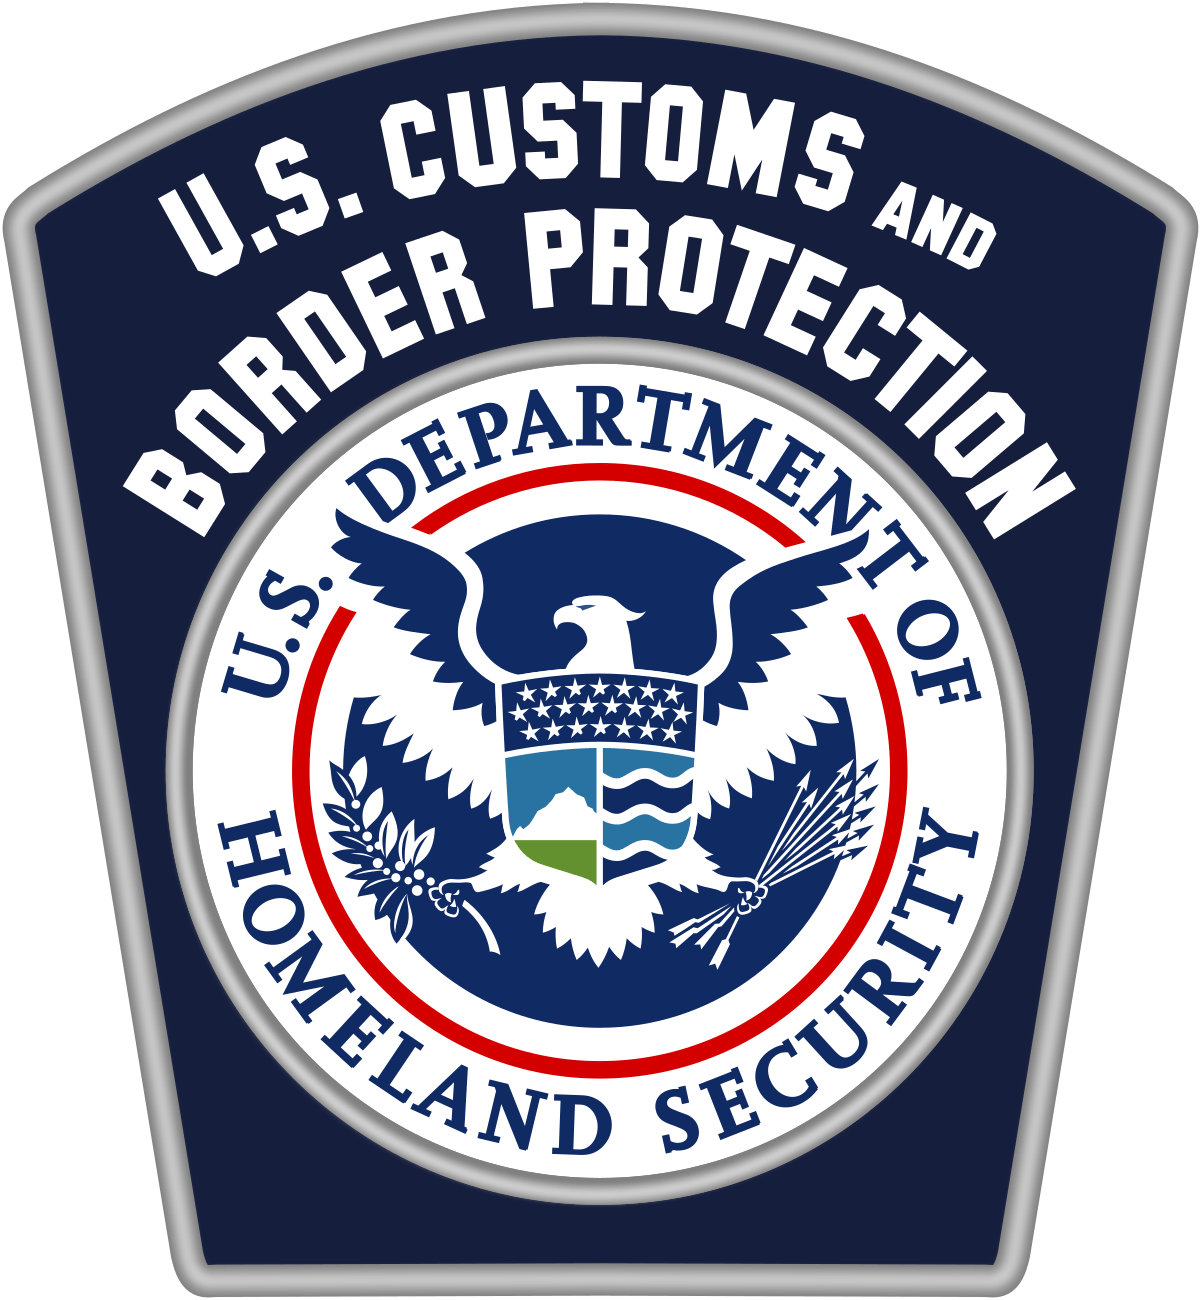 Detained at US Customs for Three Hours, Devices Unconstitutionally